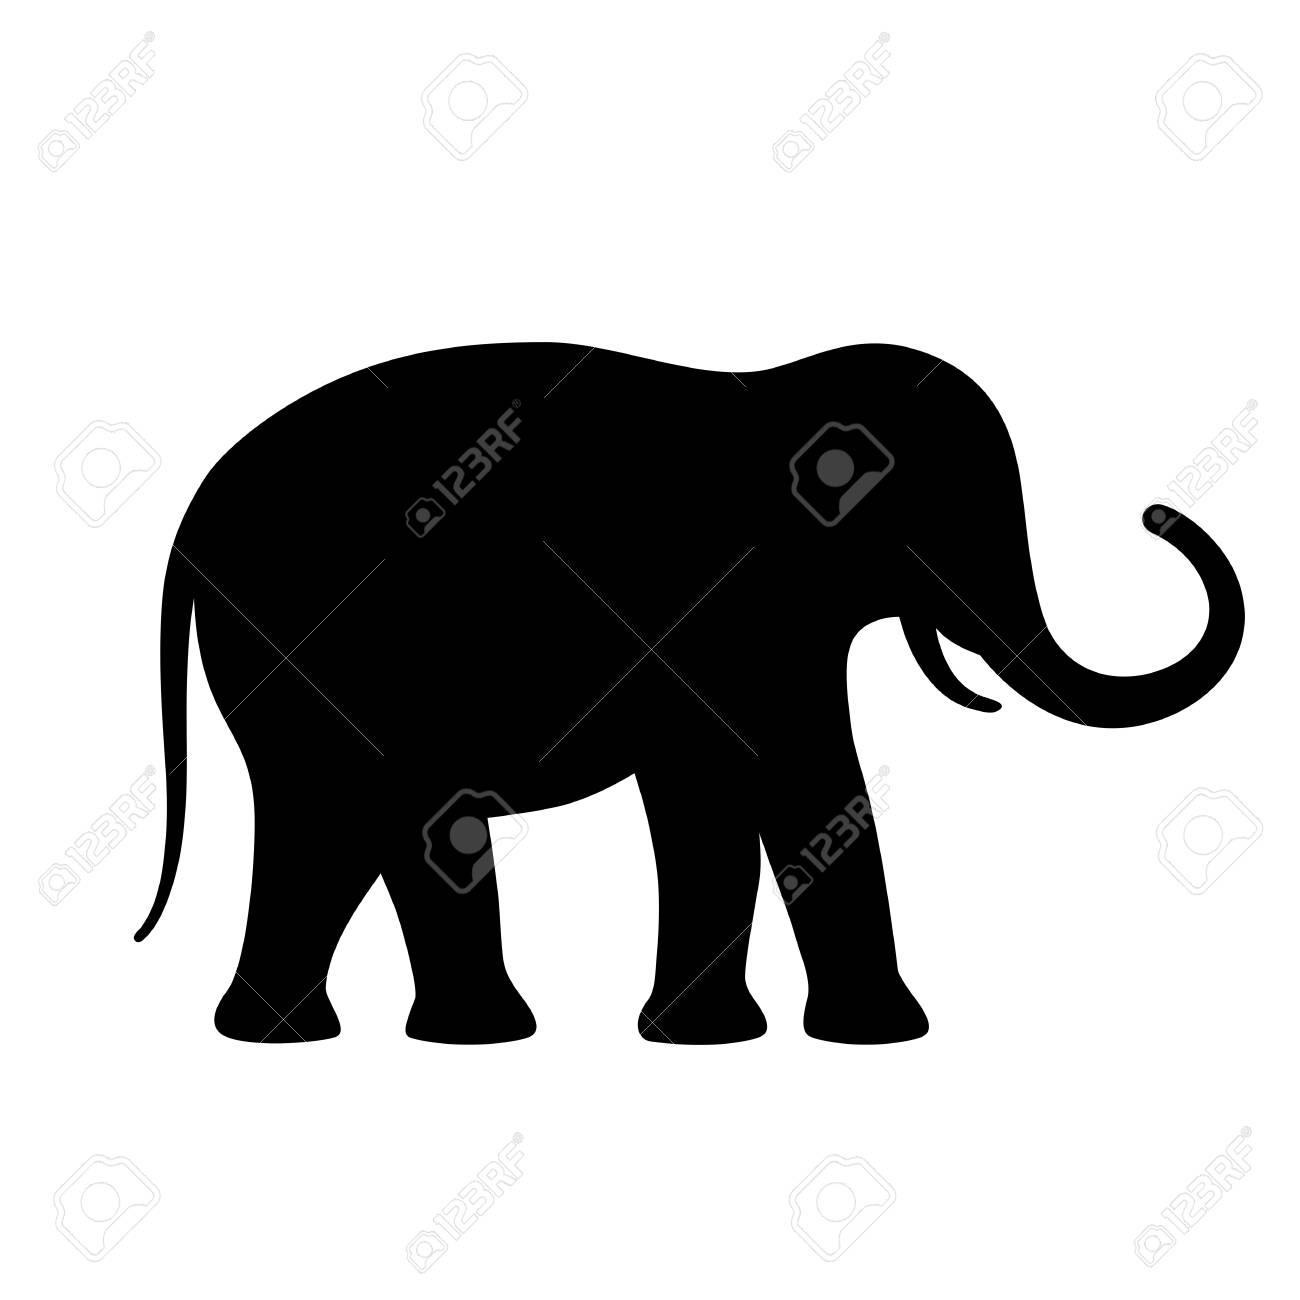 elephant vector silhouette icon royalty free cliparts vectors and rh 123rf com elephant vector free download elephant vector images